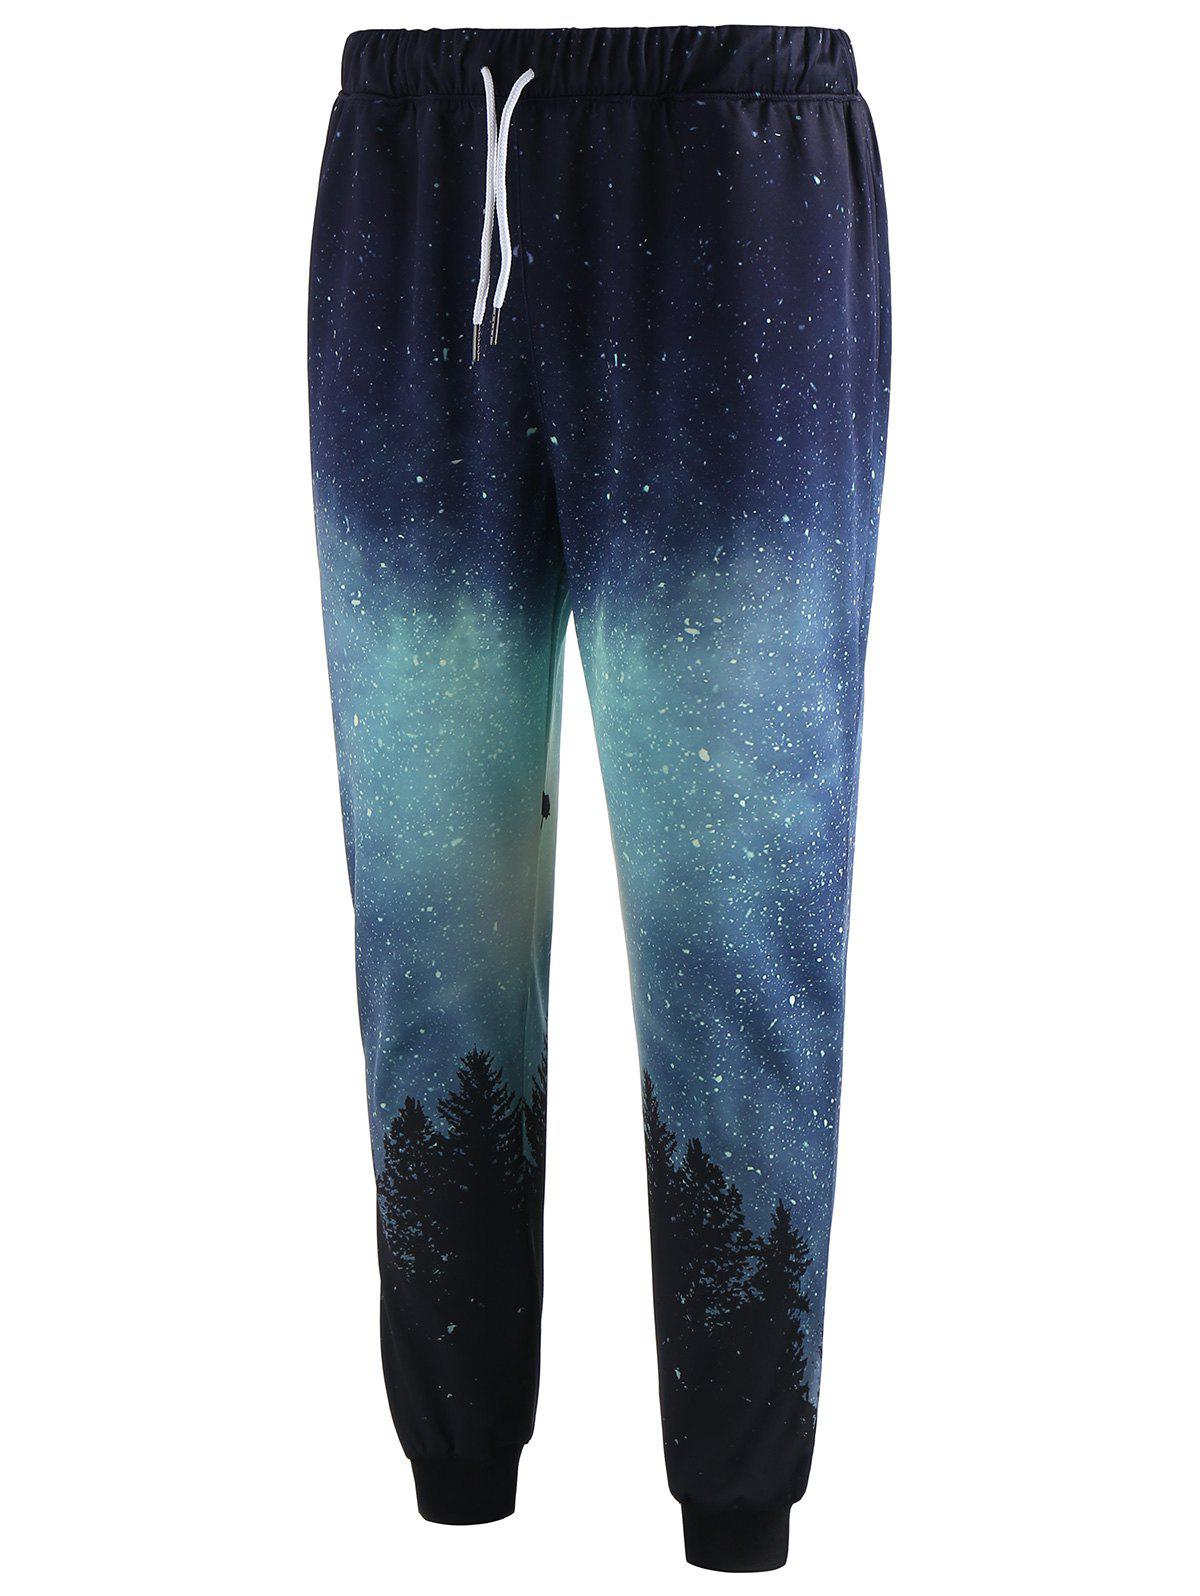 New Drawstring Waist Tree Print Jogger Pants